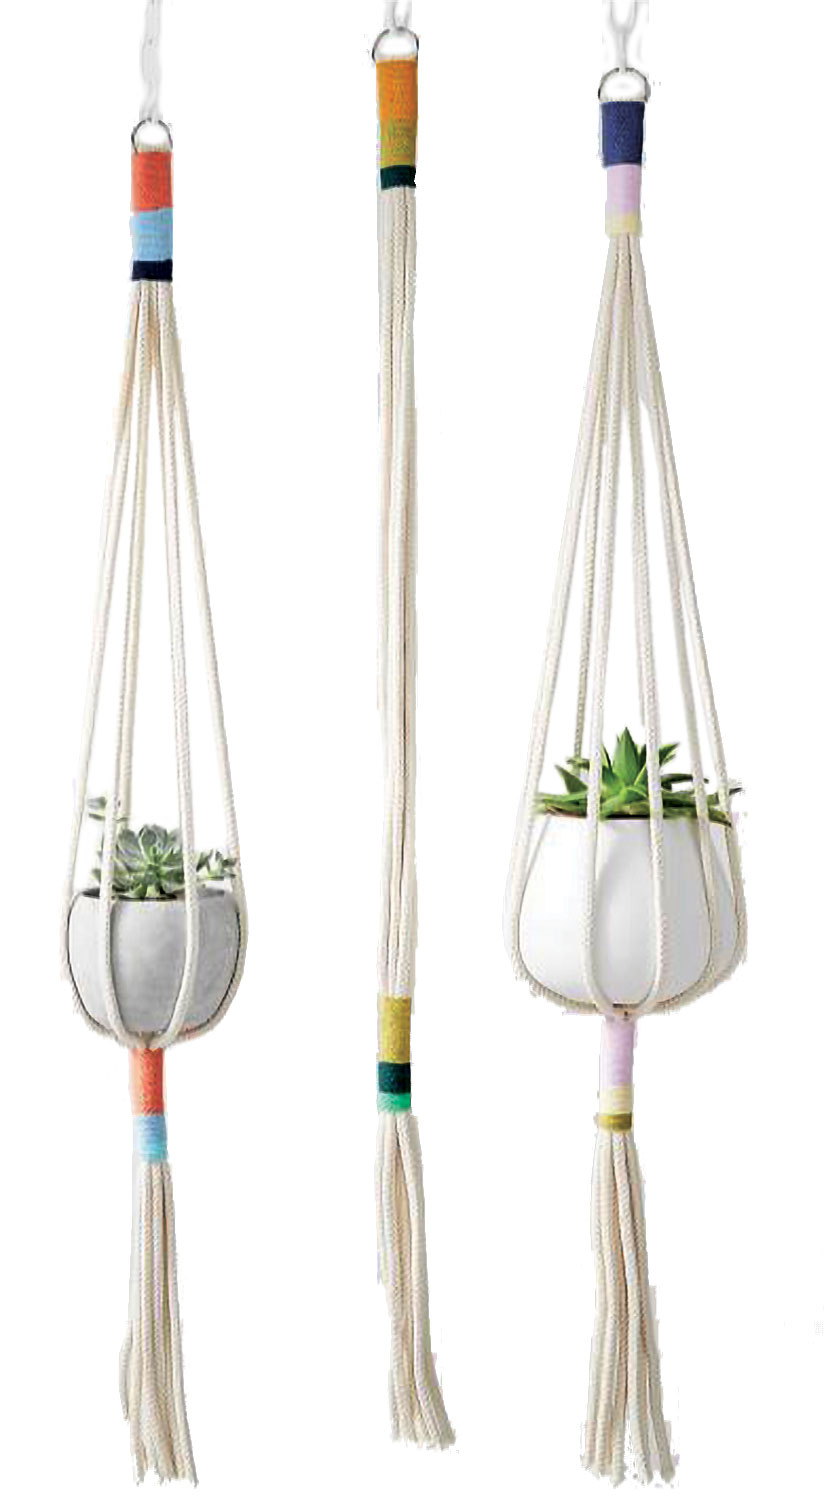 colorful plant hangers